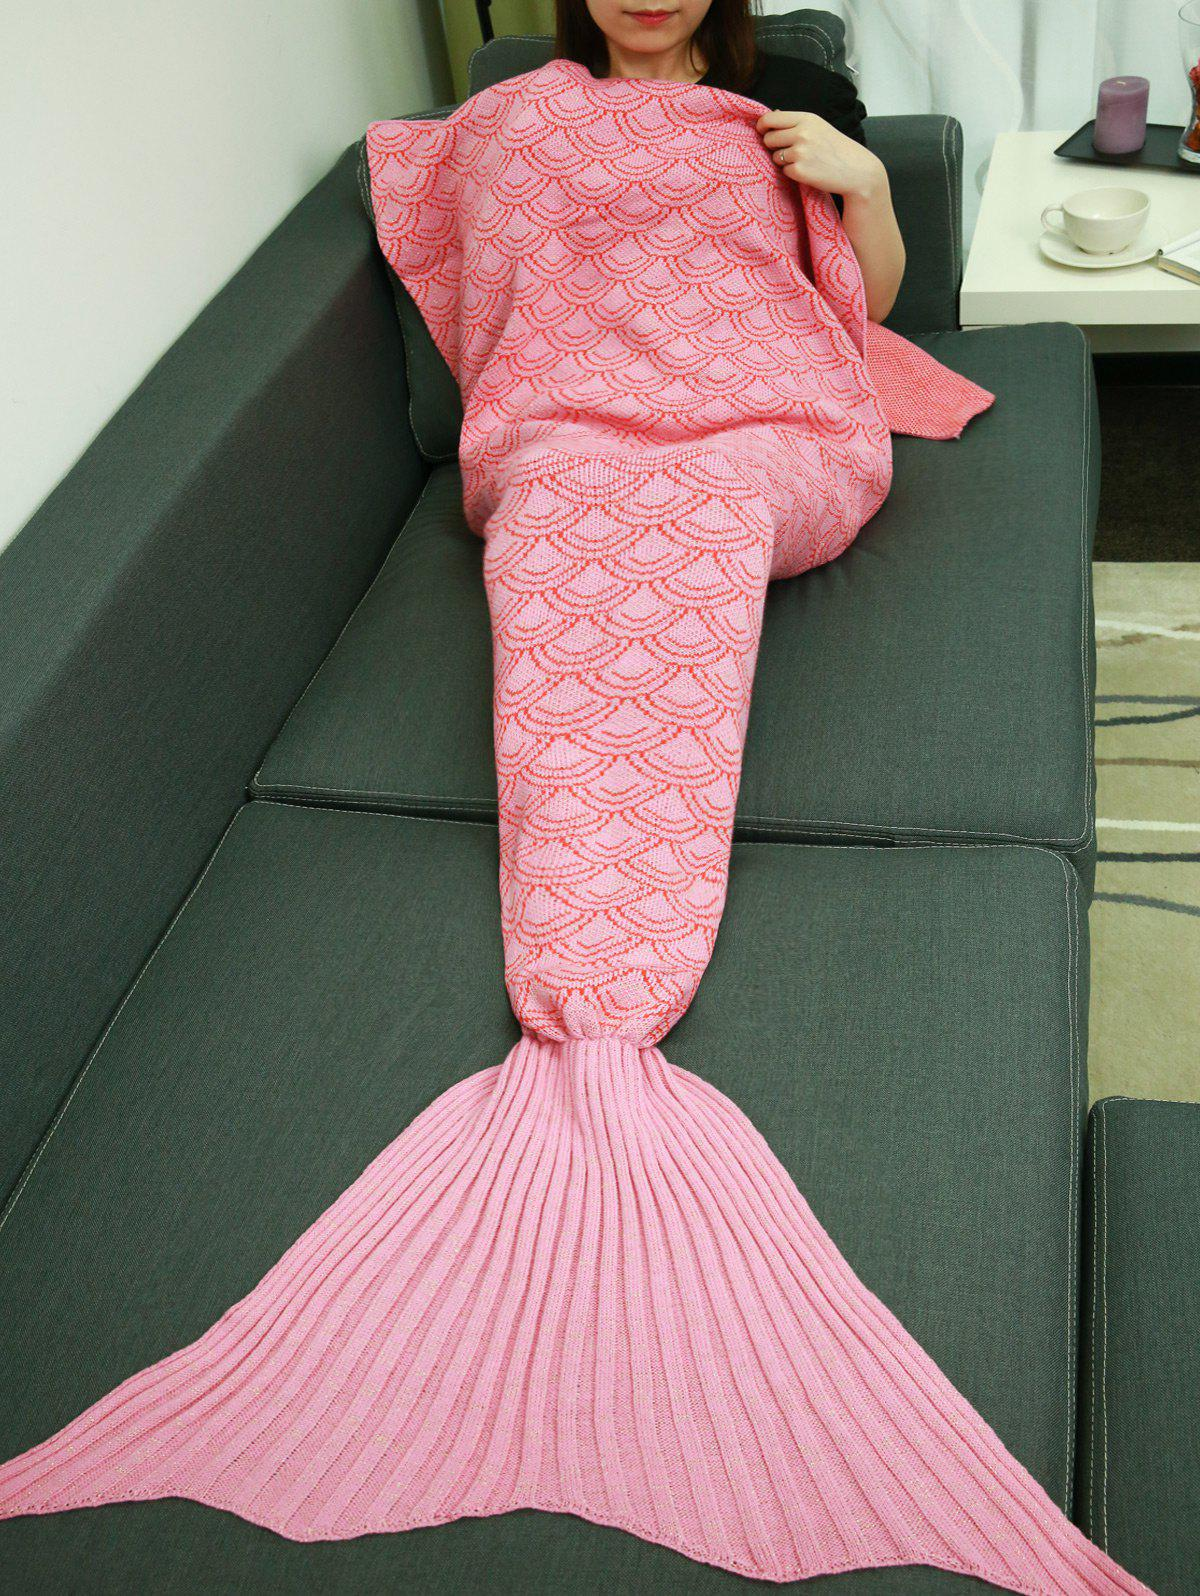 Trendy Fish Scale Design Sleeping Bag Wrap Mermaid Tail Blanket